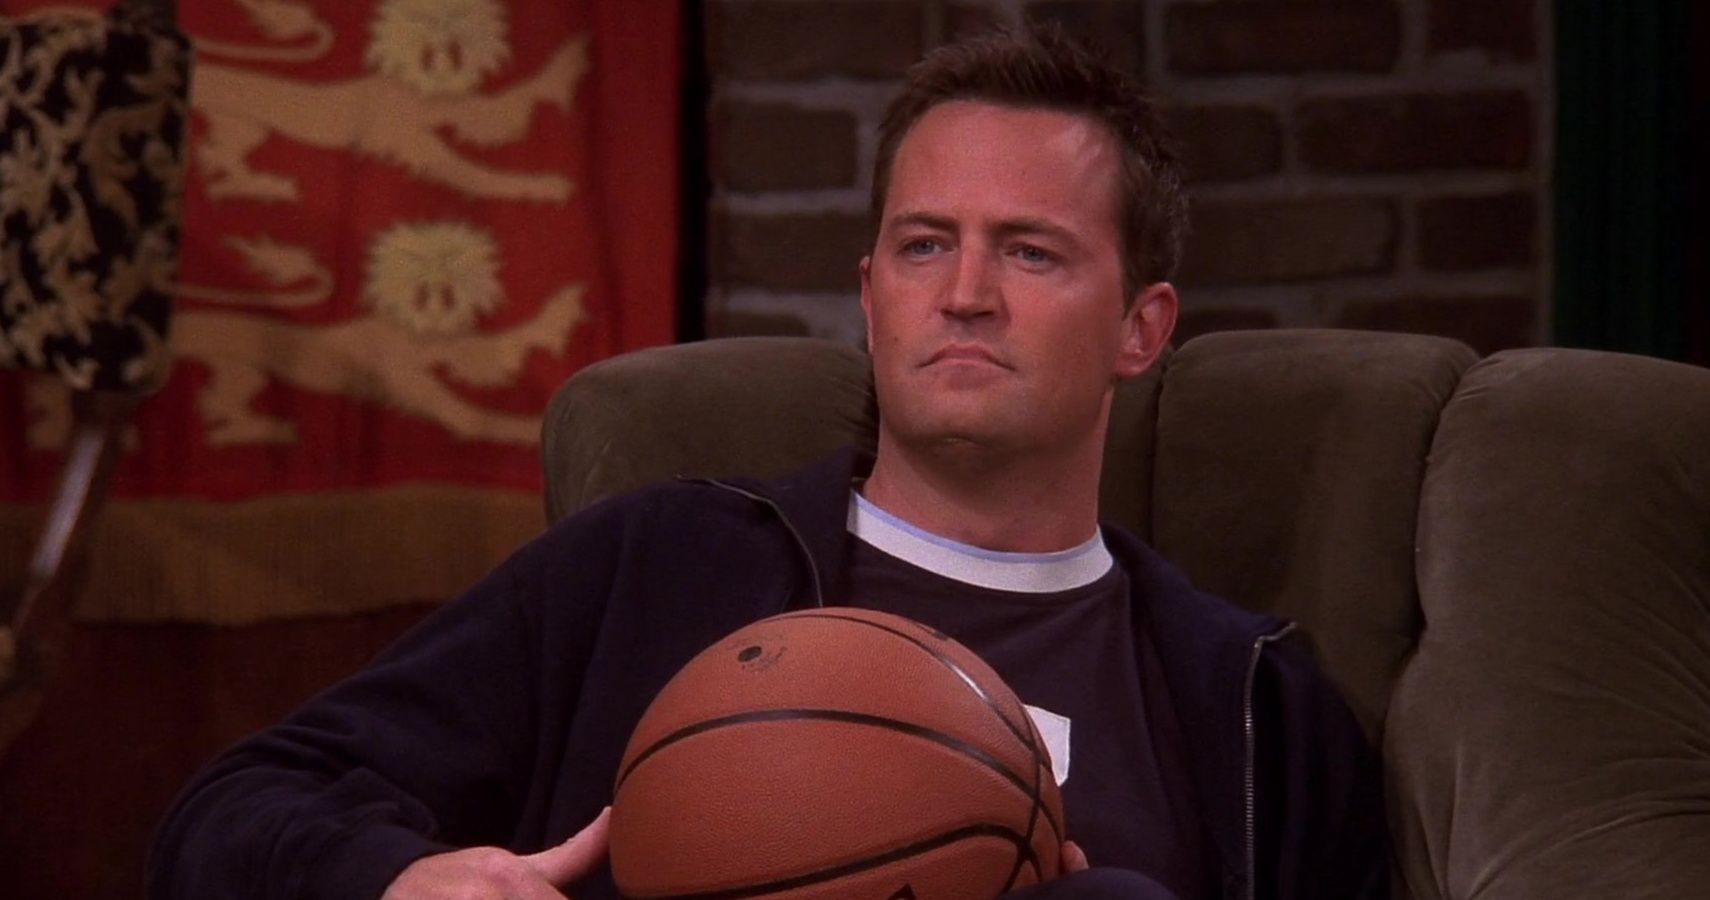 7. Chandler Bing (Friends). The most steady character on the show moneywise. He is smart and knows better than to spend on small unnecessary things.